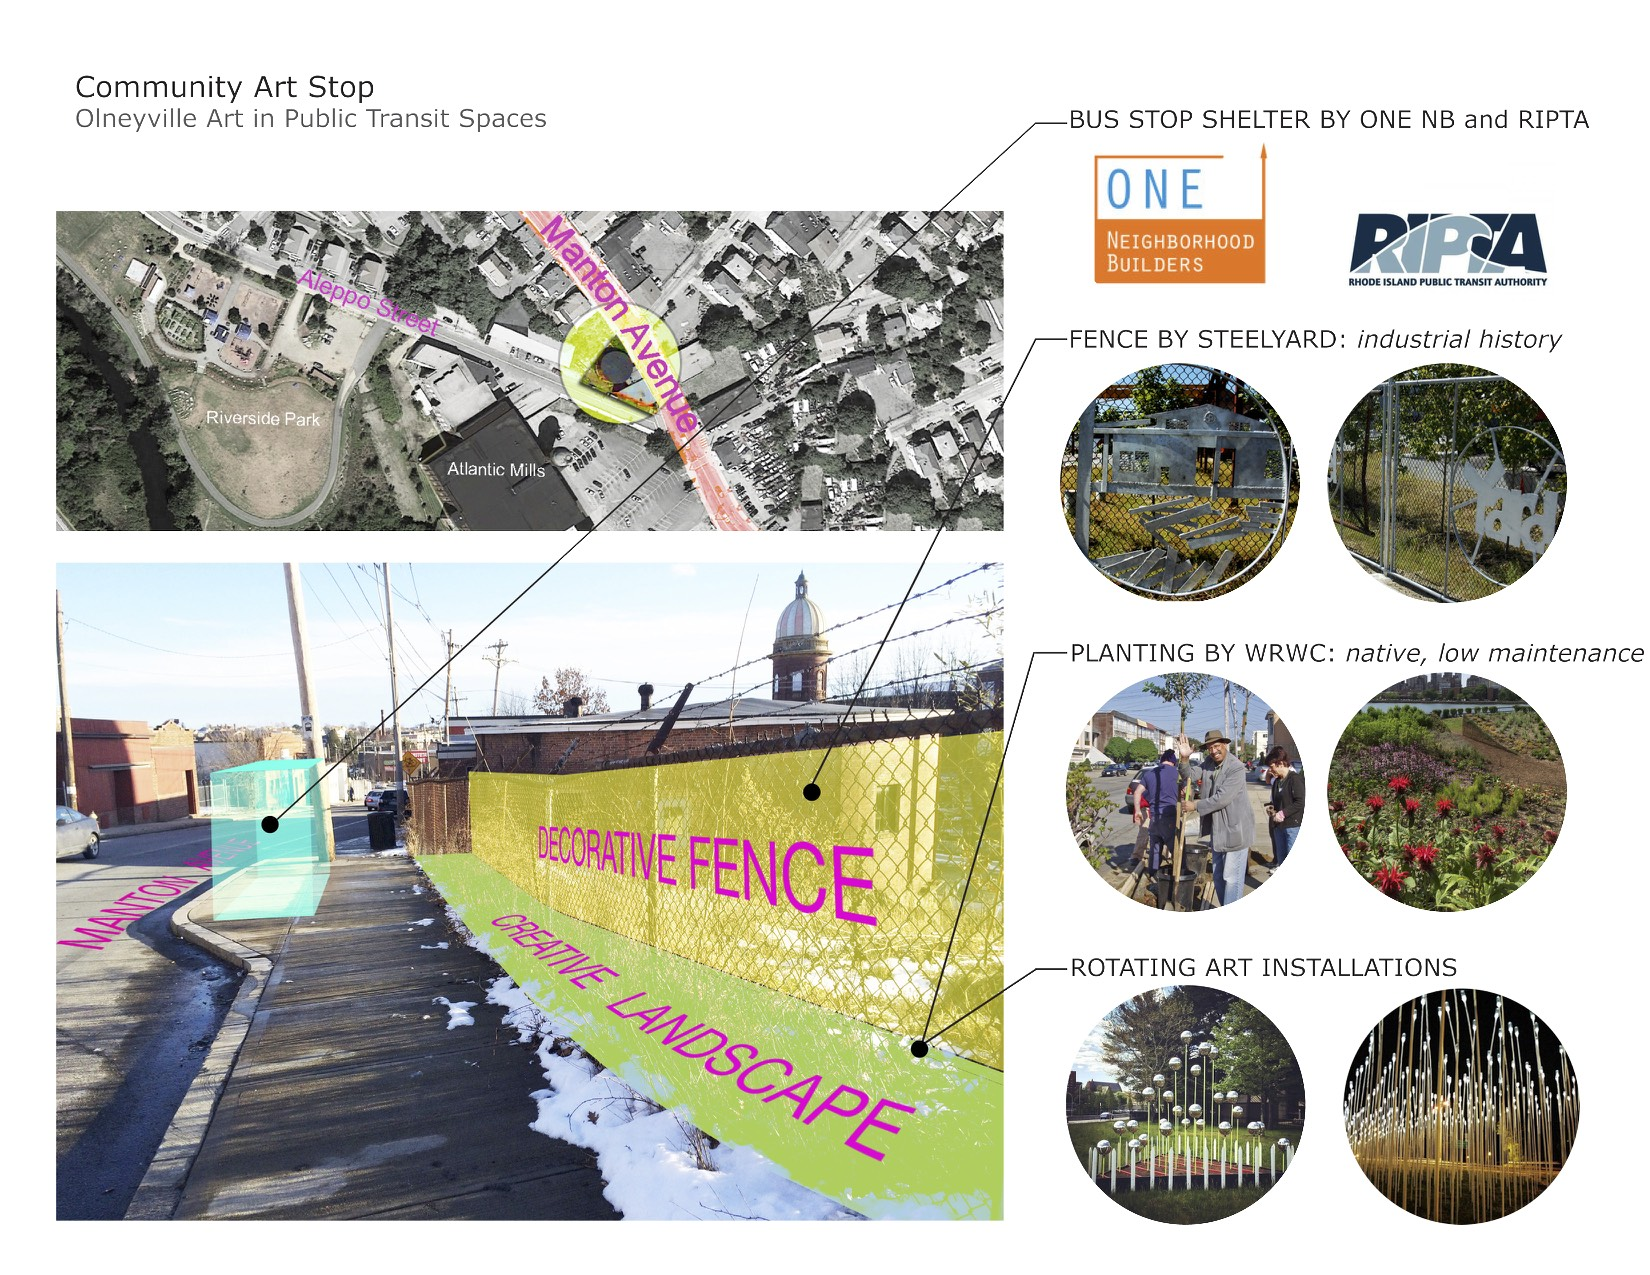 """The """"Community Art Stop"""" project assists and enriches existing efforts to create safe and attractive bus stops along Manton Avenue. Our proposal seeks to make this streetscape into a revolving urban art exhibit"""